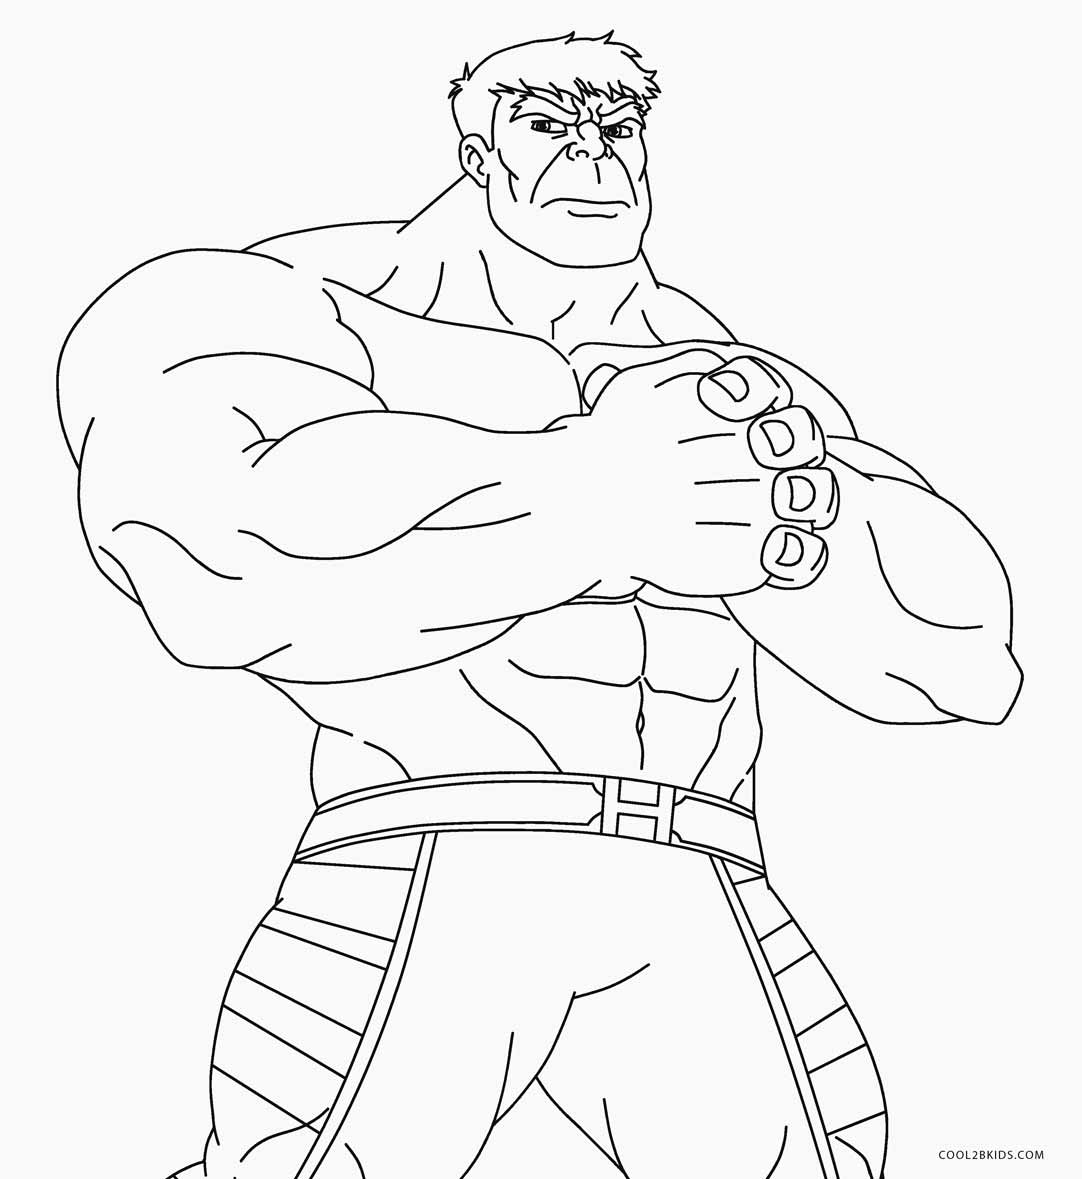 hulk coloring pictures hulk coloring pictures hulk pictures coloring